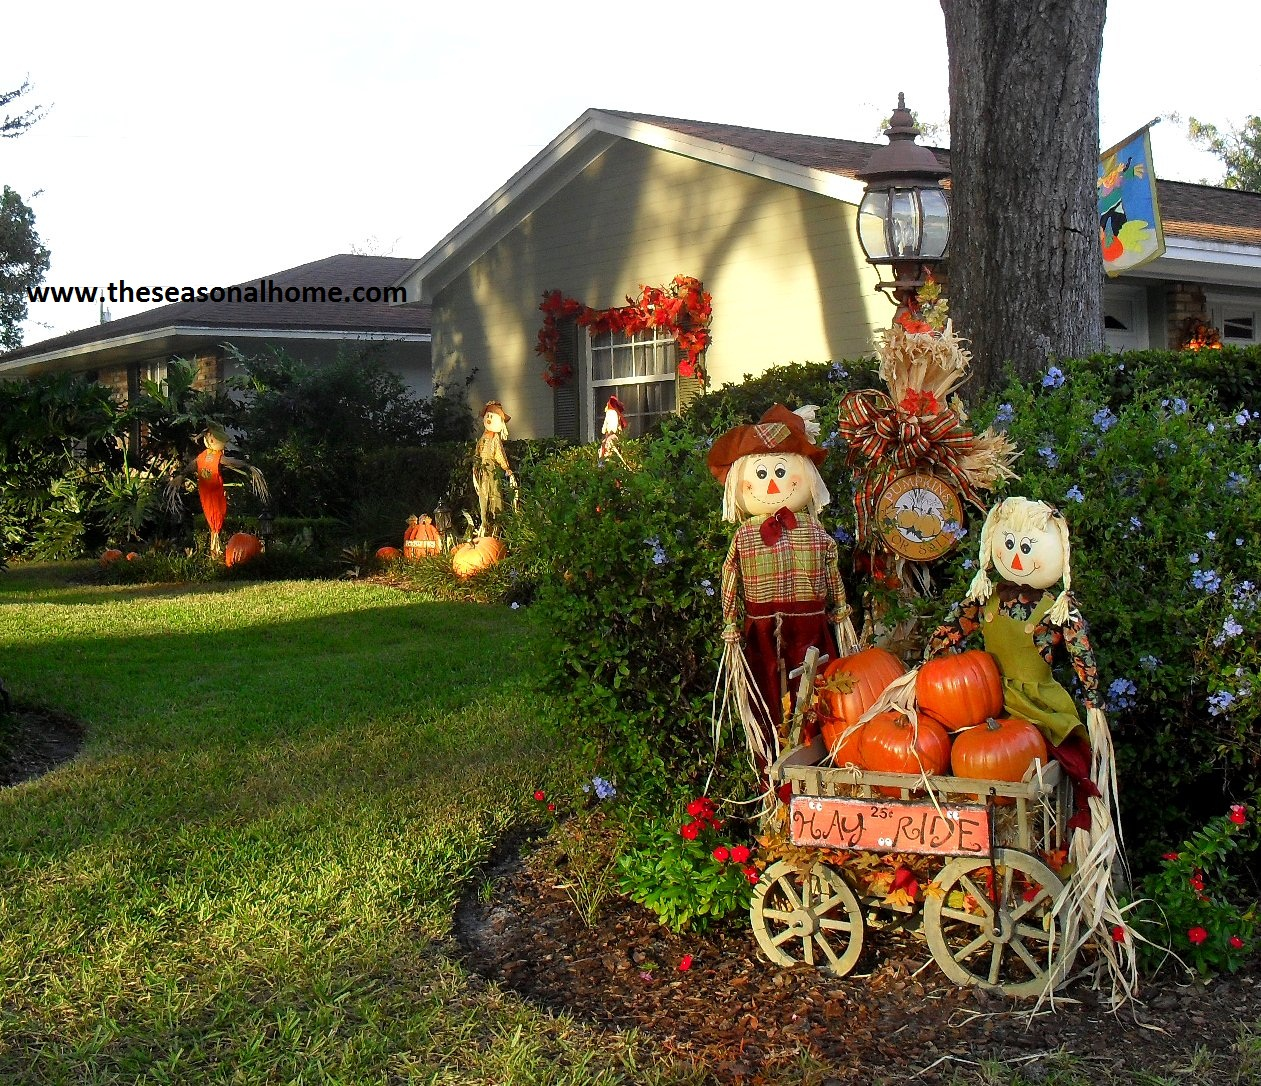 Halloween front garden ideas - Fall Has Fell In The Front Yard The Seasonal Home Garden Idea